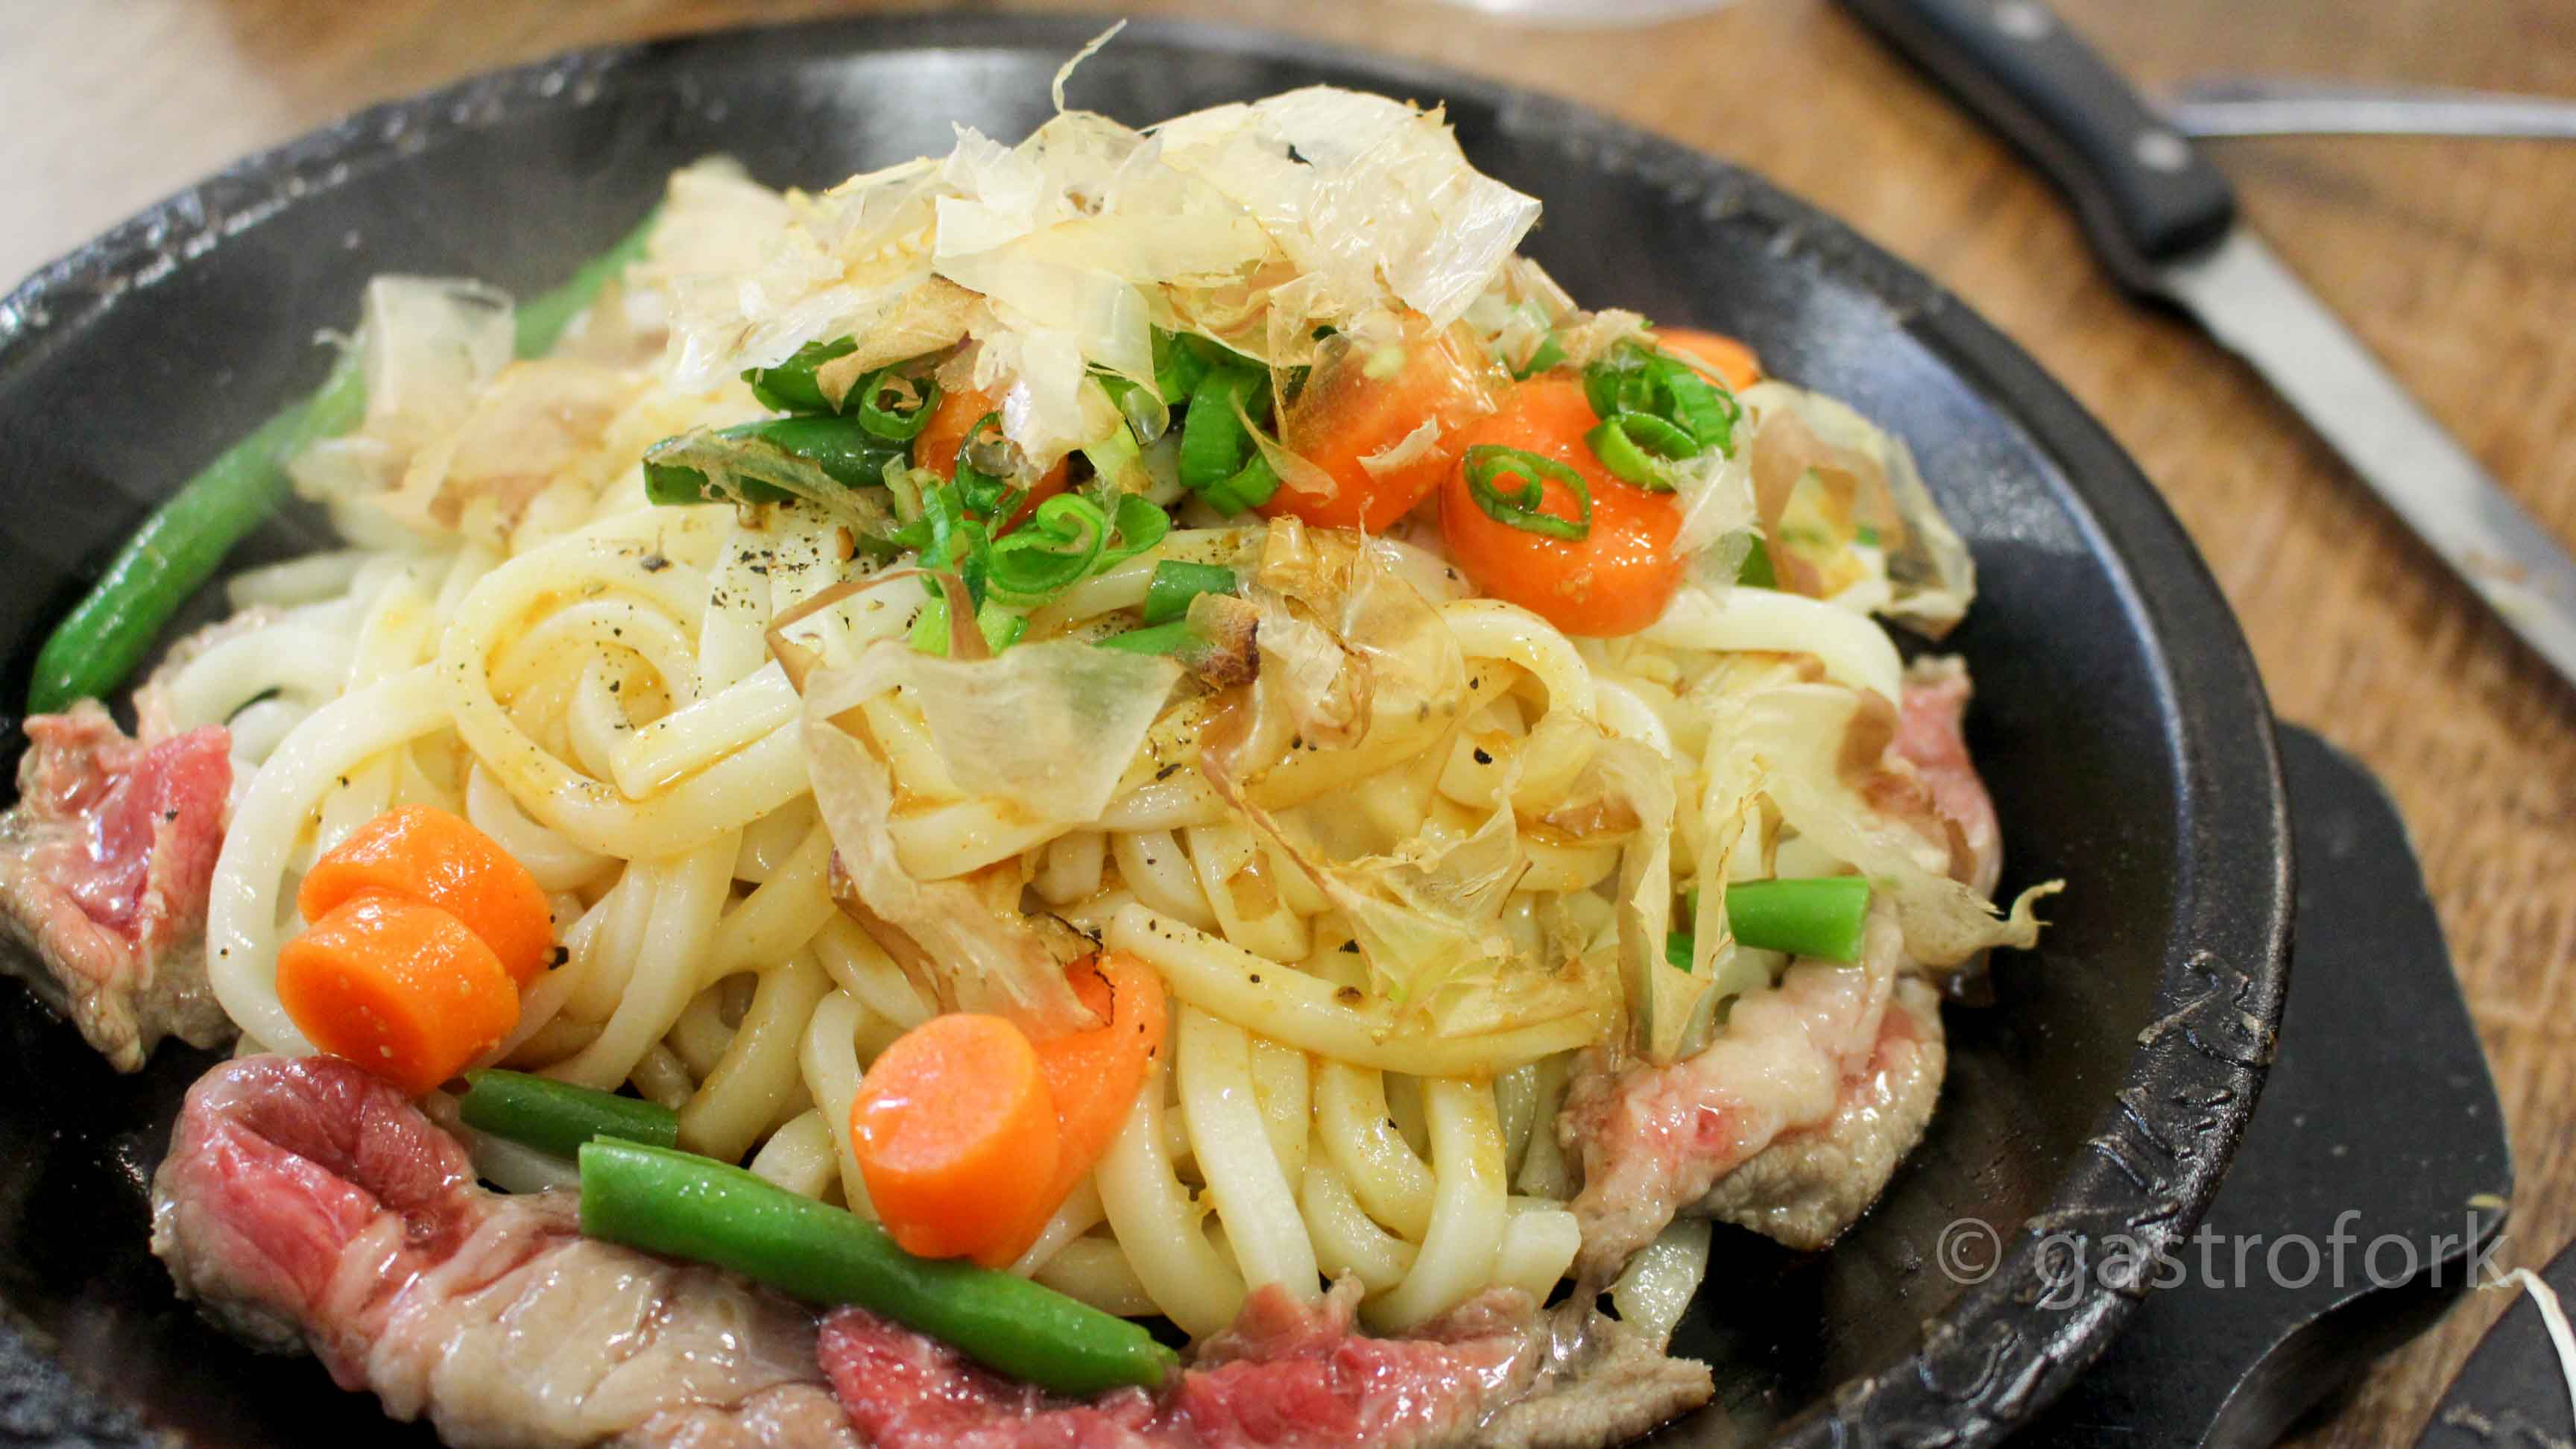 pepper lunch canada dinner specials yaki udon